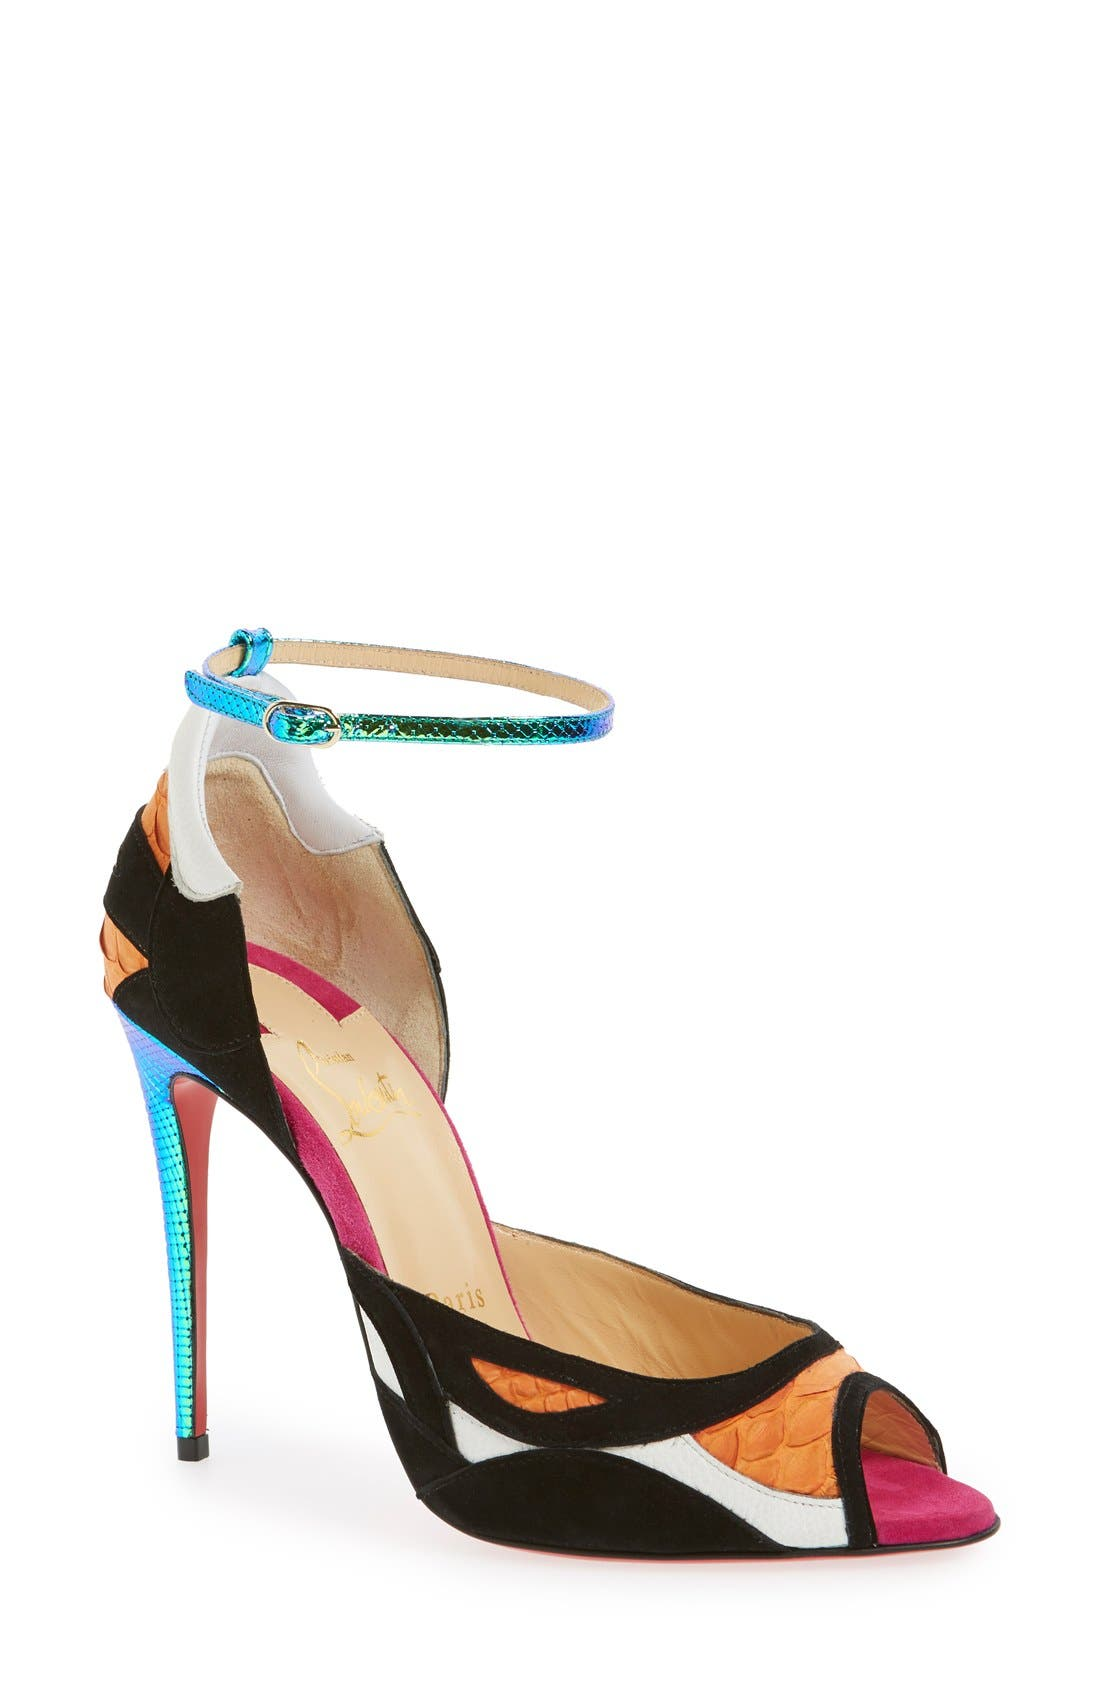 Main Image - Christian Louboutin 'Discodeporte' Genuine Python Ankle Strap Pump (Women)